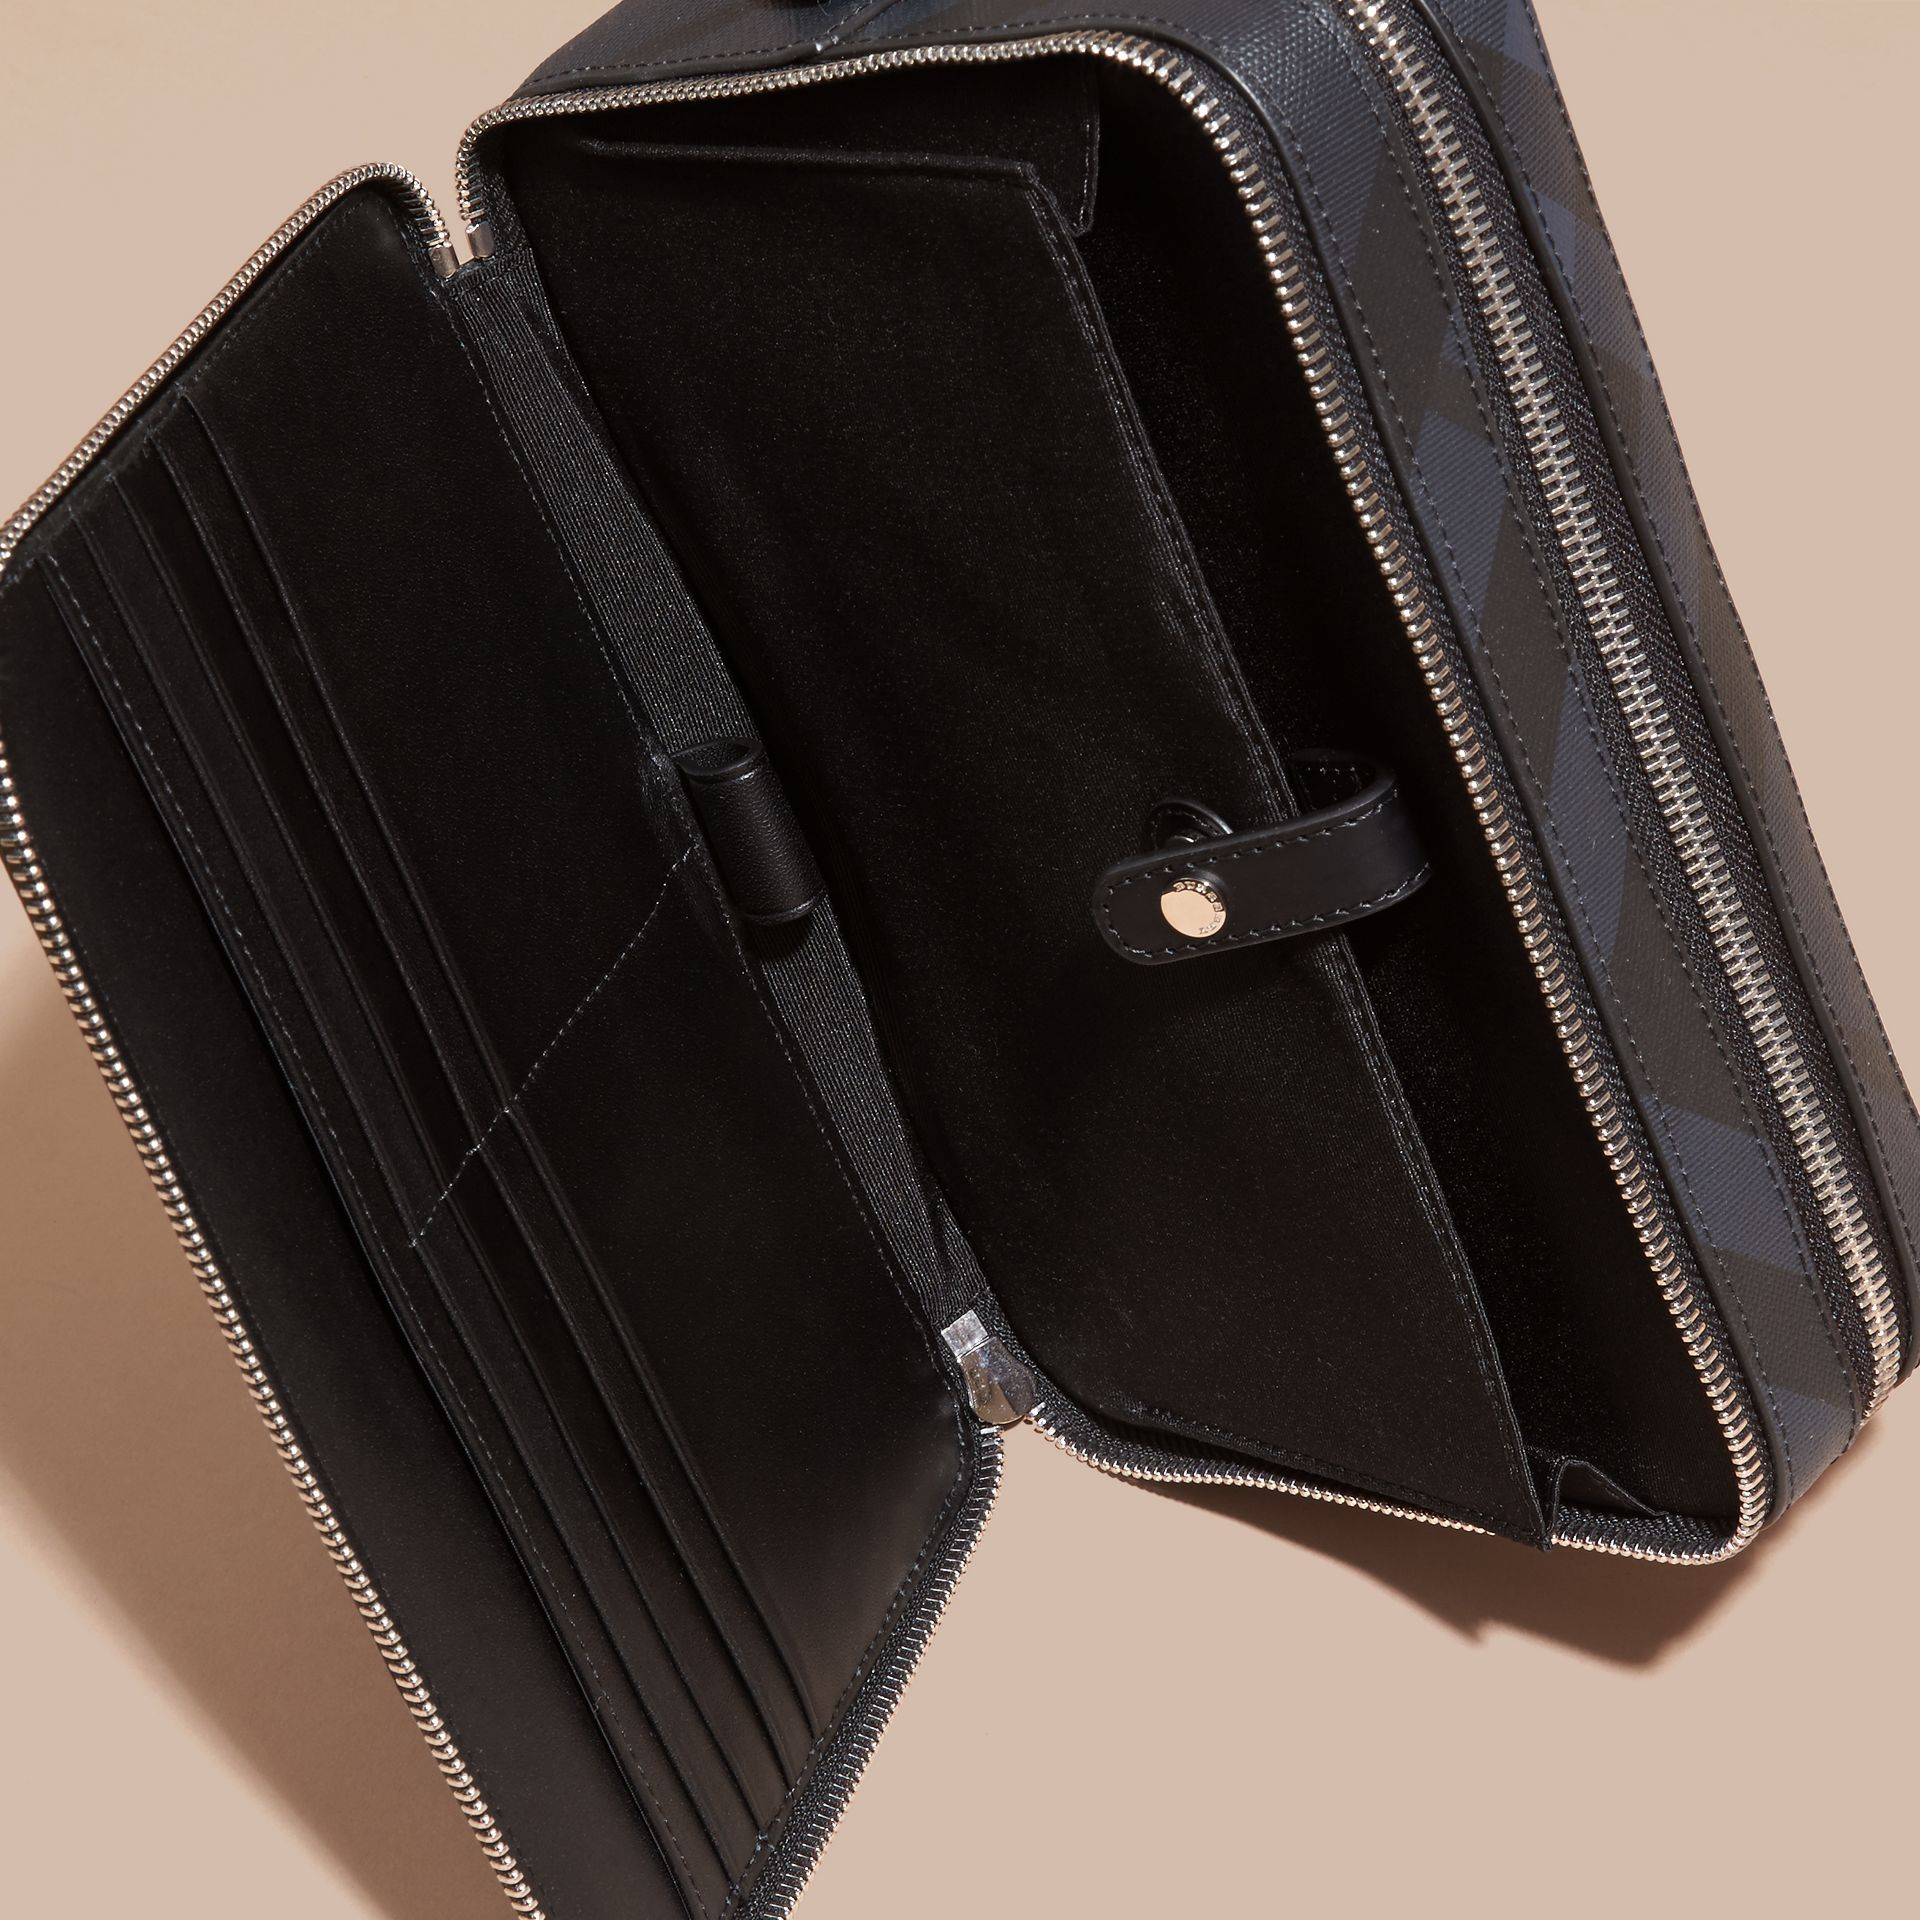 Leather-trimmed London Check Pouch in Navy/black - Men | Burberry Canada - gallery image 4